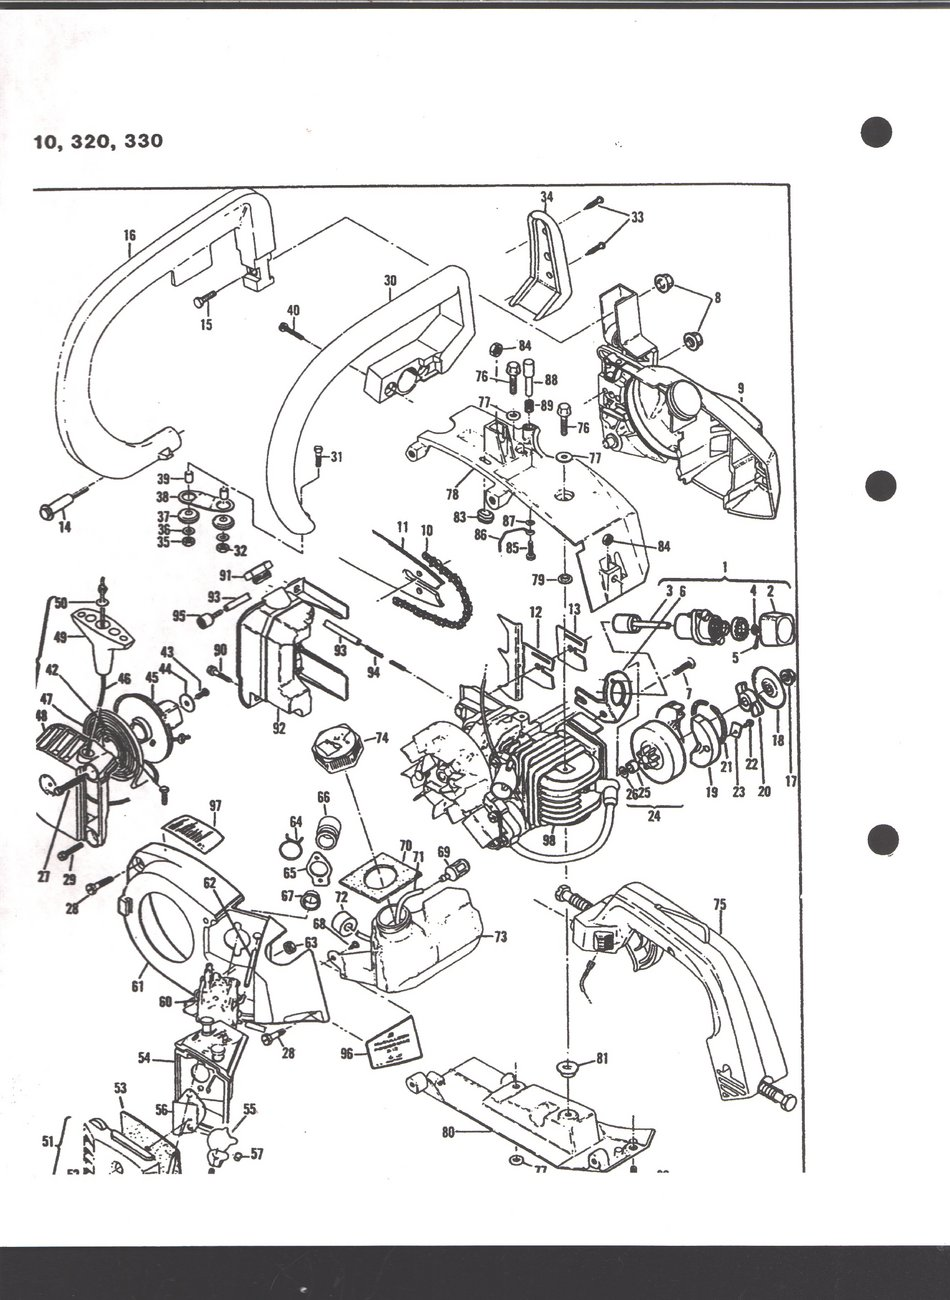 Mcculloch Mac 110 Parts Diagram, Mcculloch, Free Engine